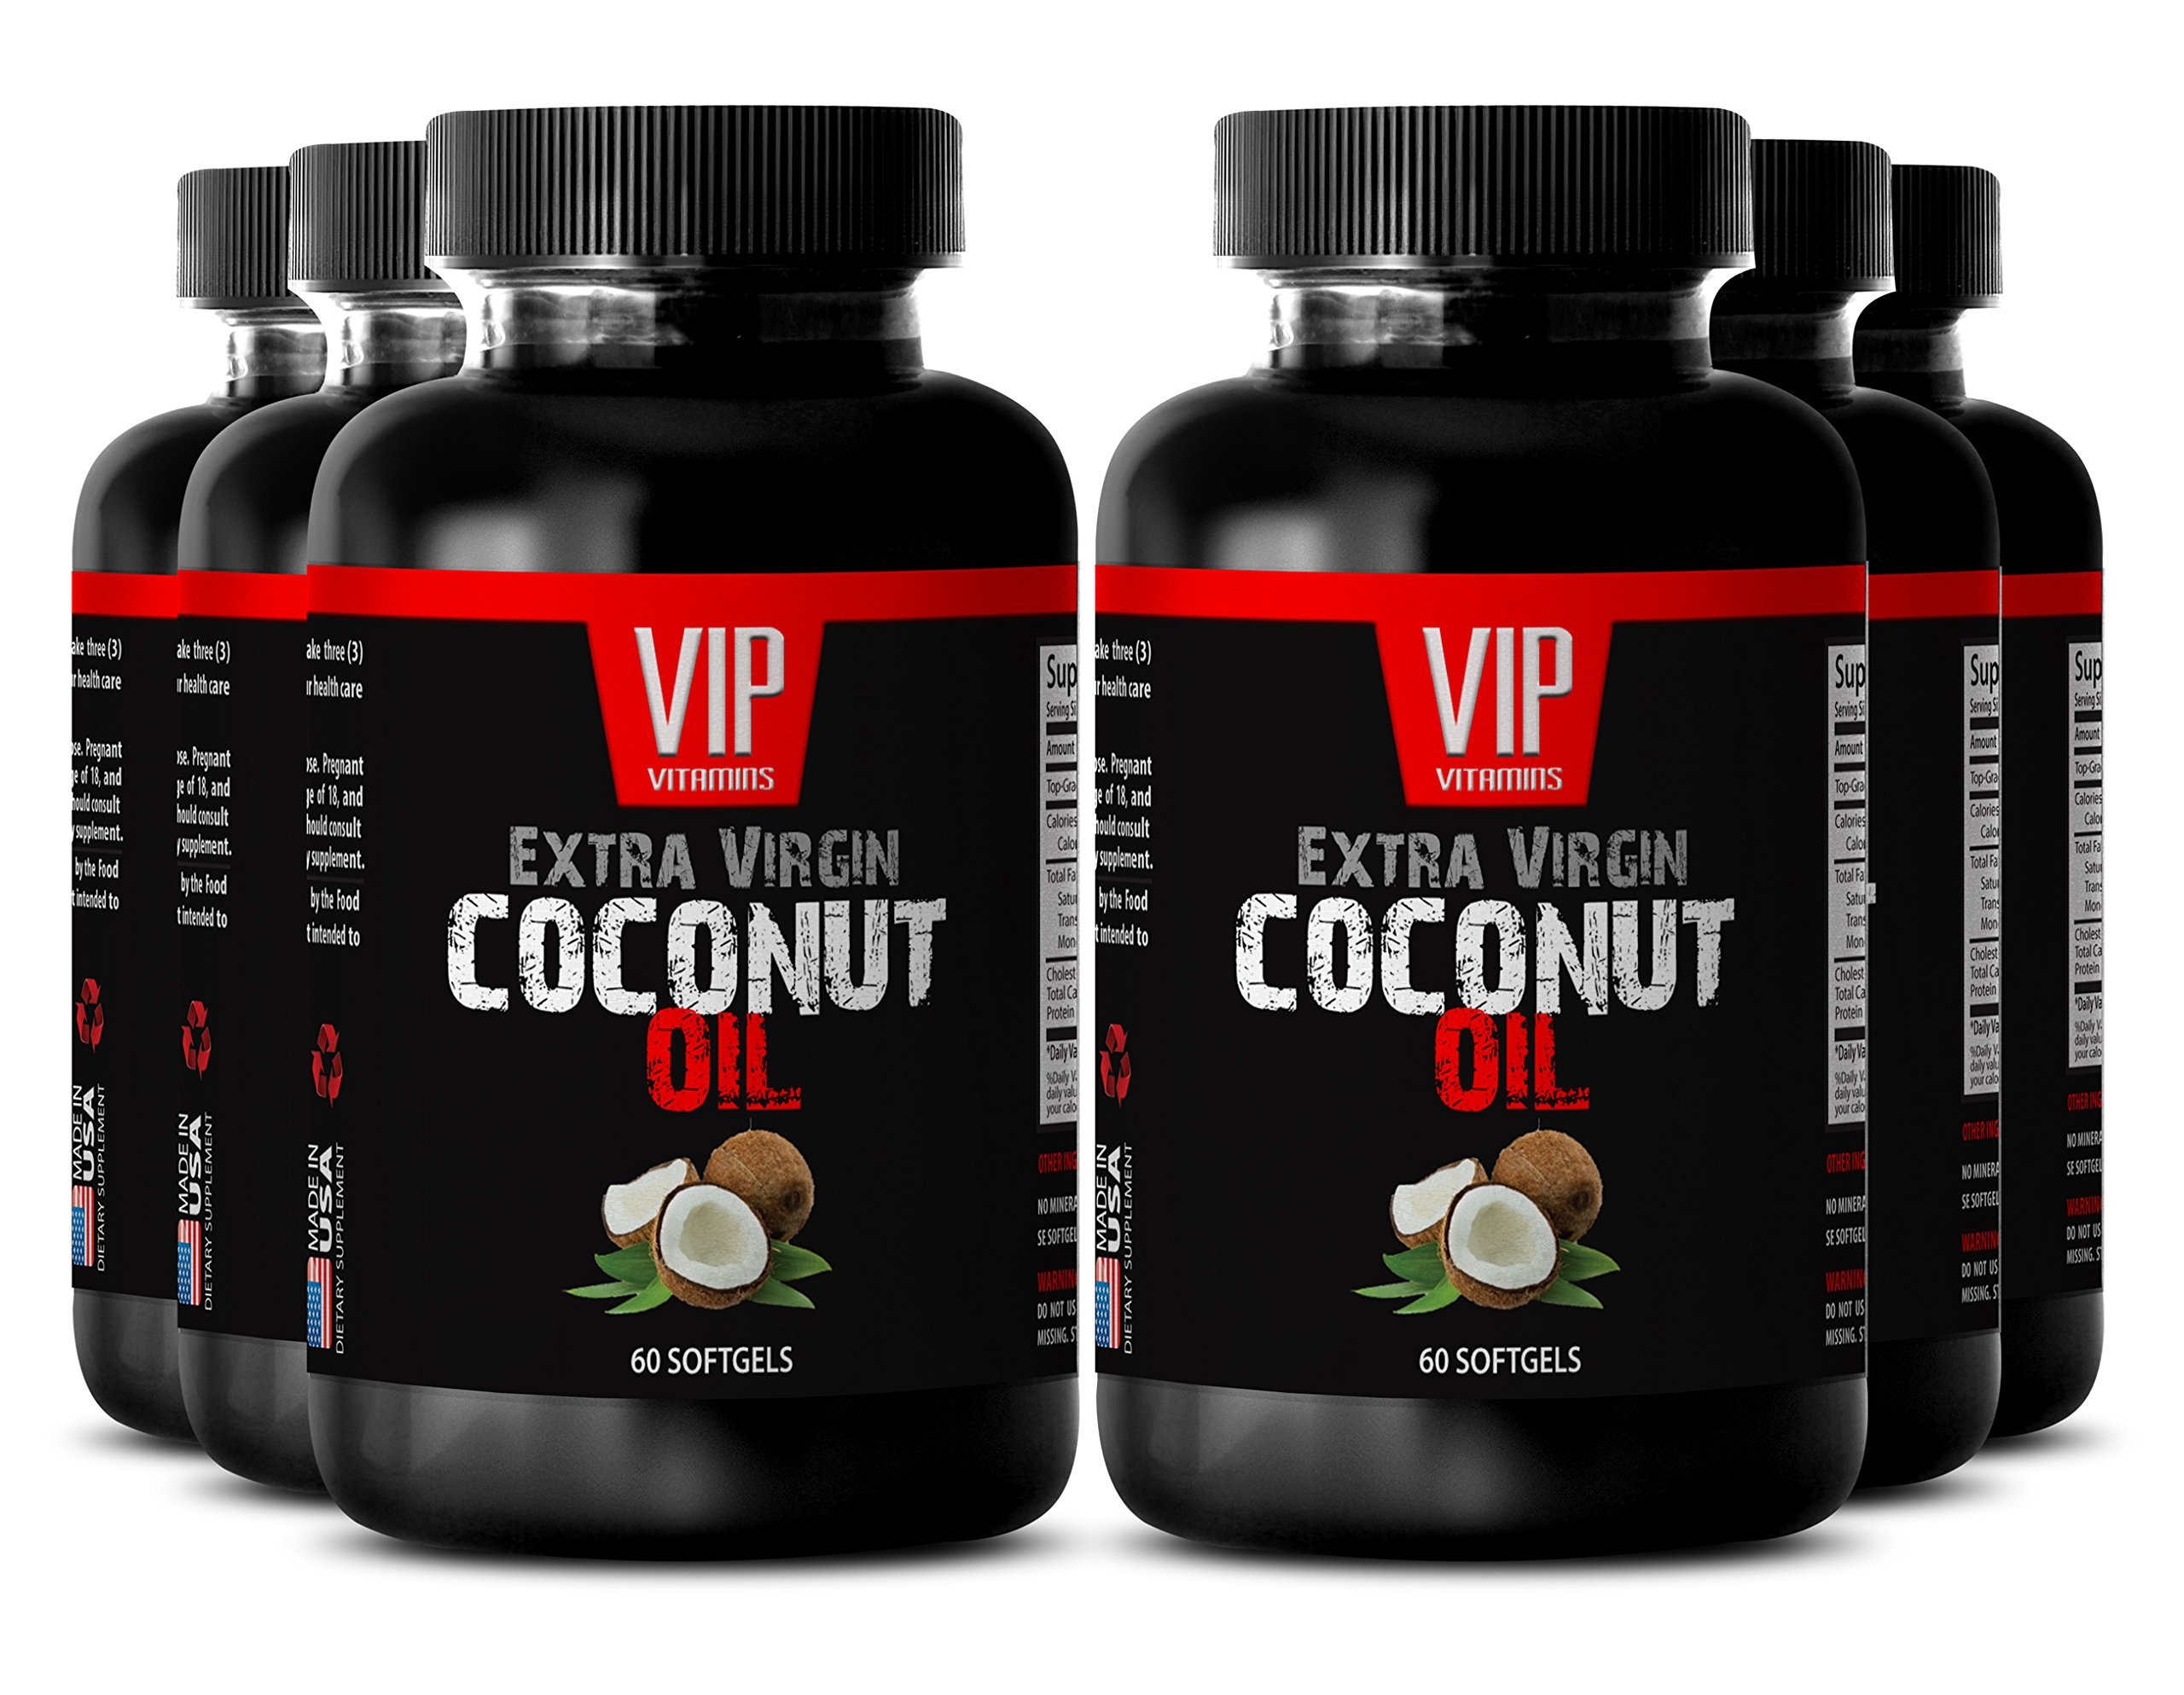 Burn fat fast pills - COCONUT OIL EXTRA VIRGIN - Weight loss supplement - 6 Bottles 360 Softgels